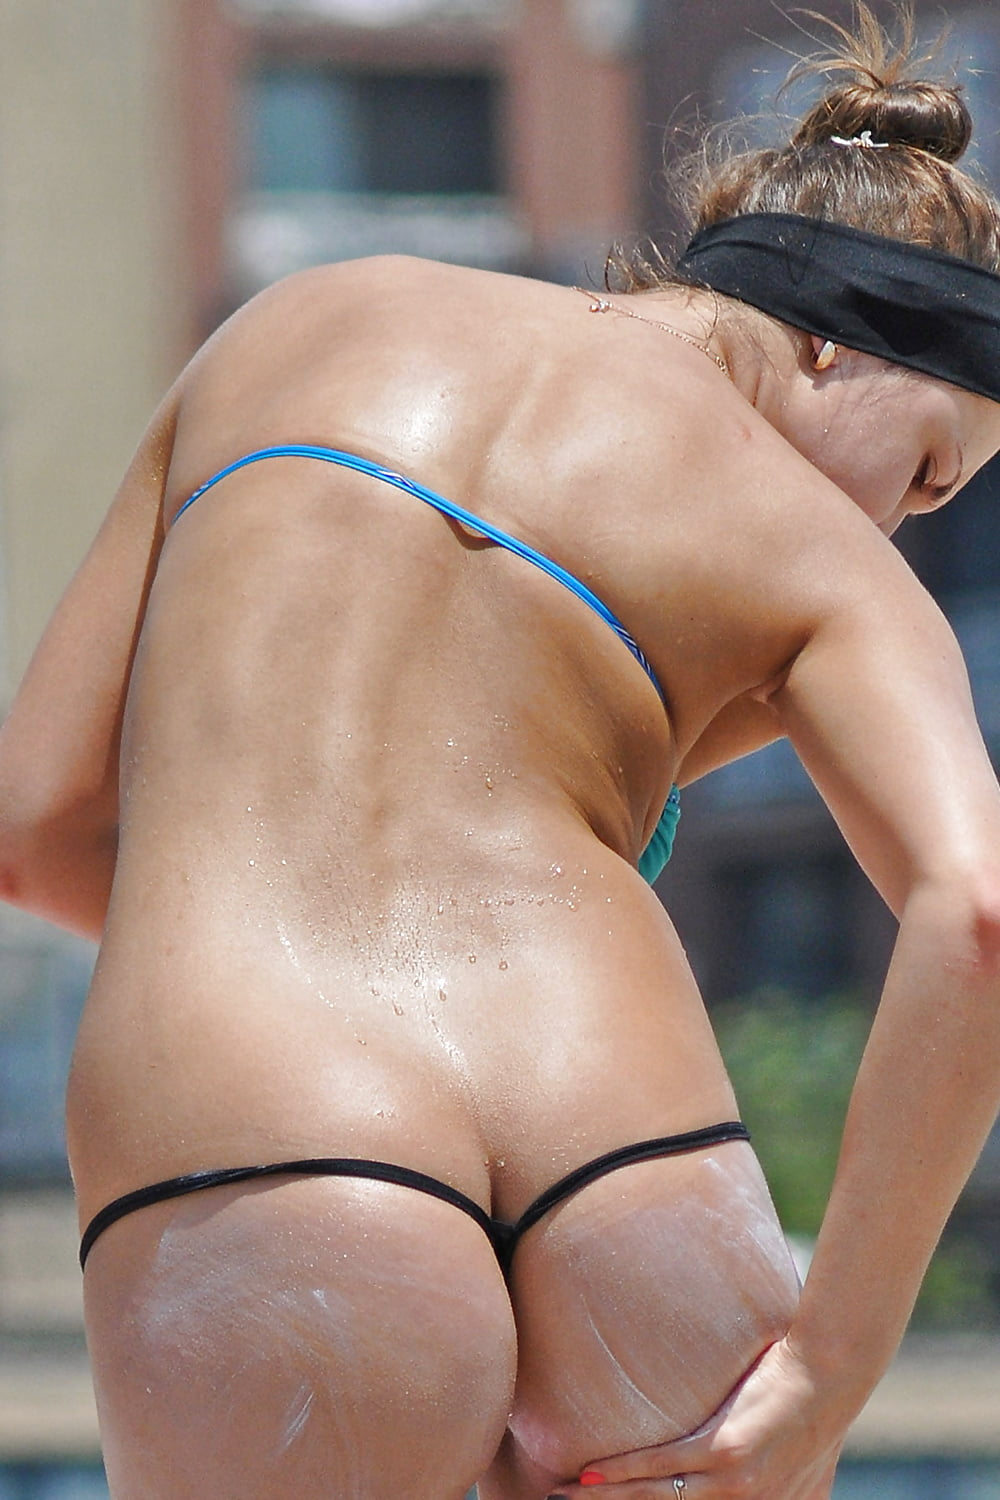 Naked women volleyball players